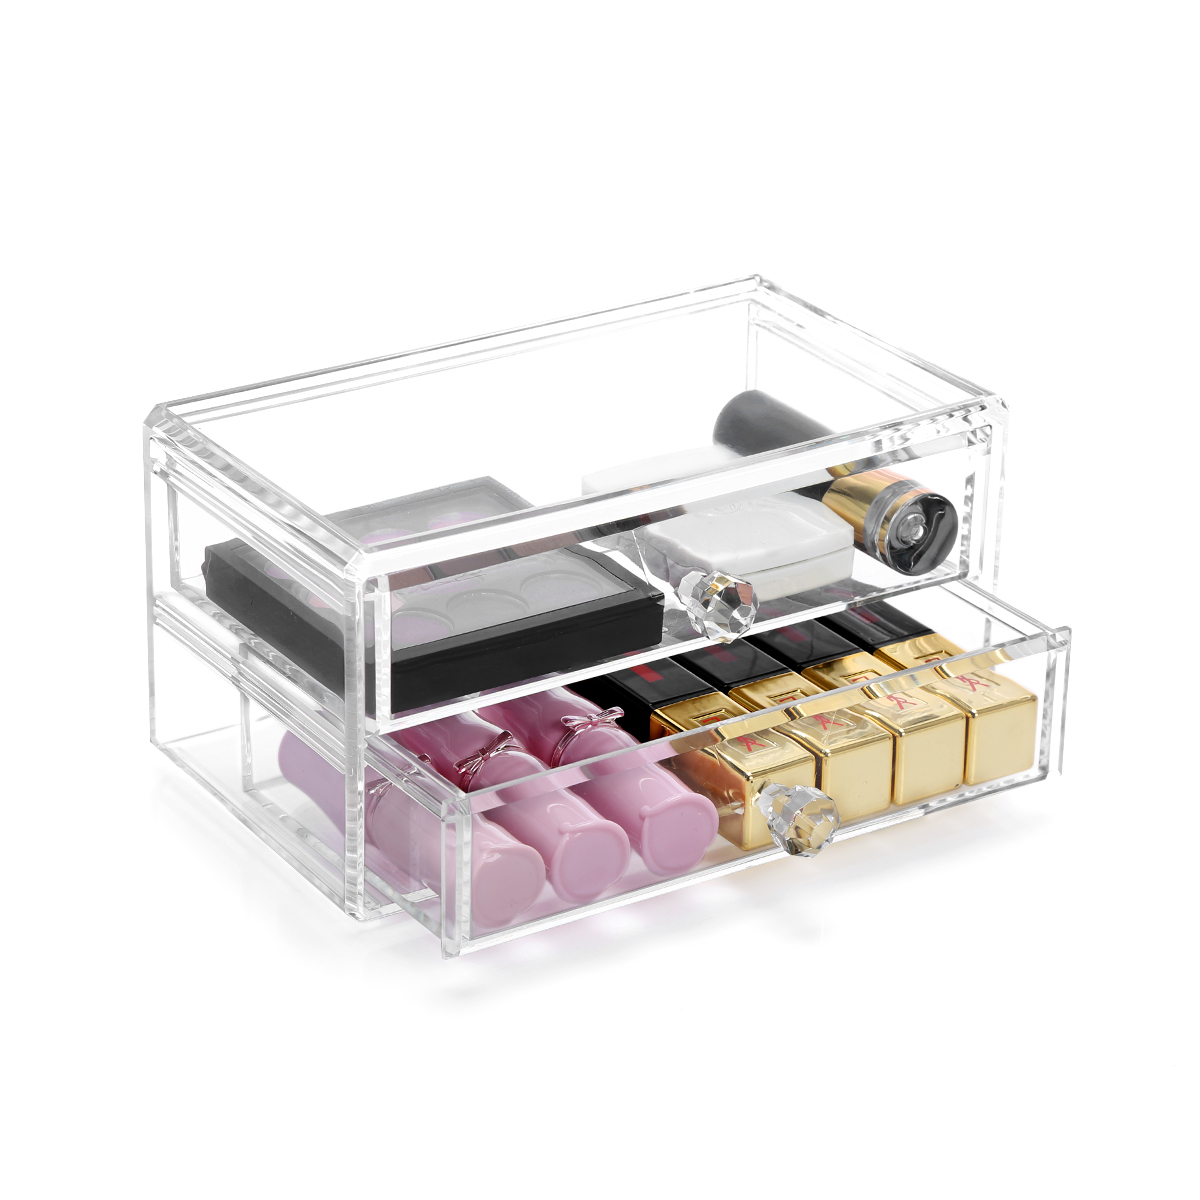 Home Storage Container 2 Drawers Acrylic Makeup Organizer Lipstick Nail Polish Clear Plastic Cosmetic Jewelry Storage Box C172